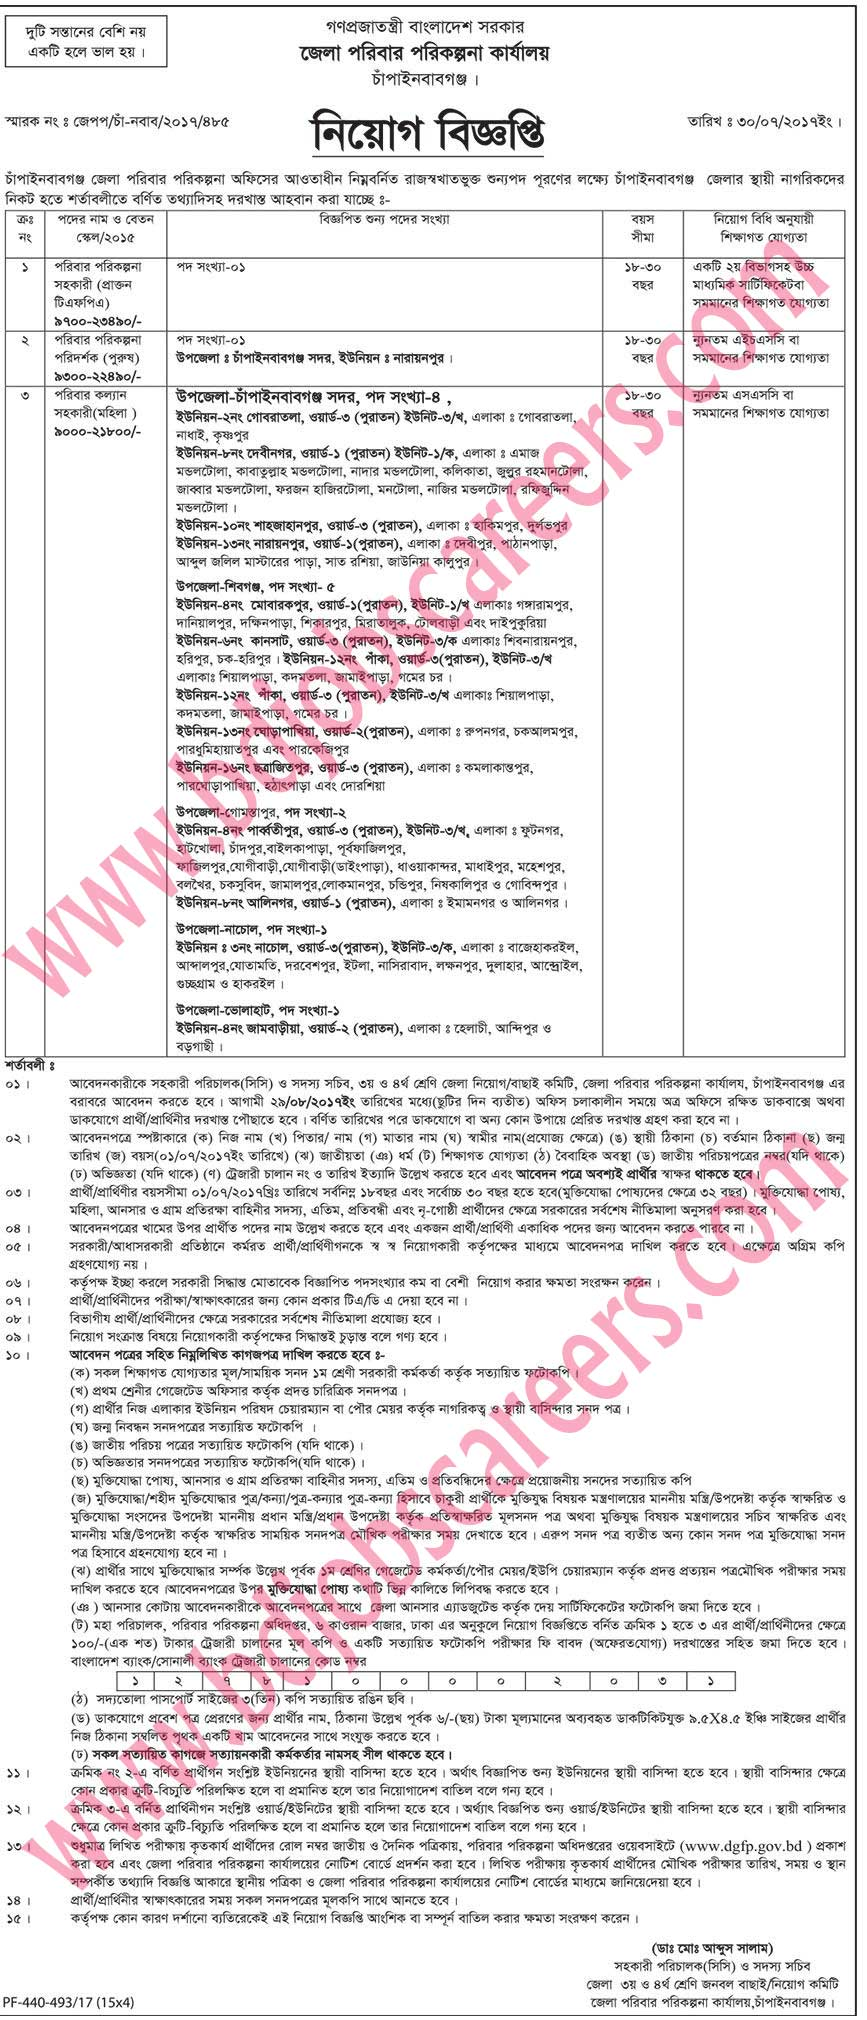 Chapainawabganj District Family Planning Office Job Circular 2017